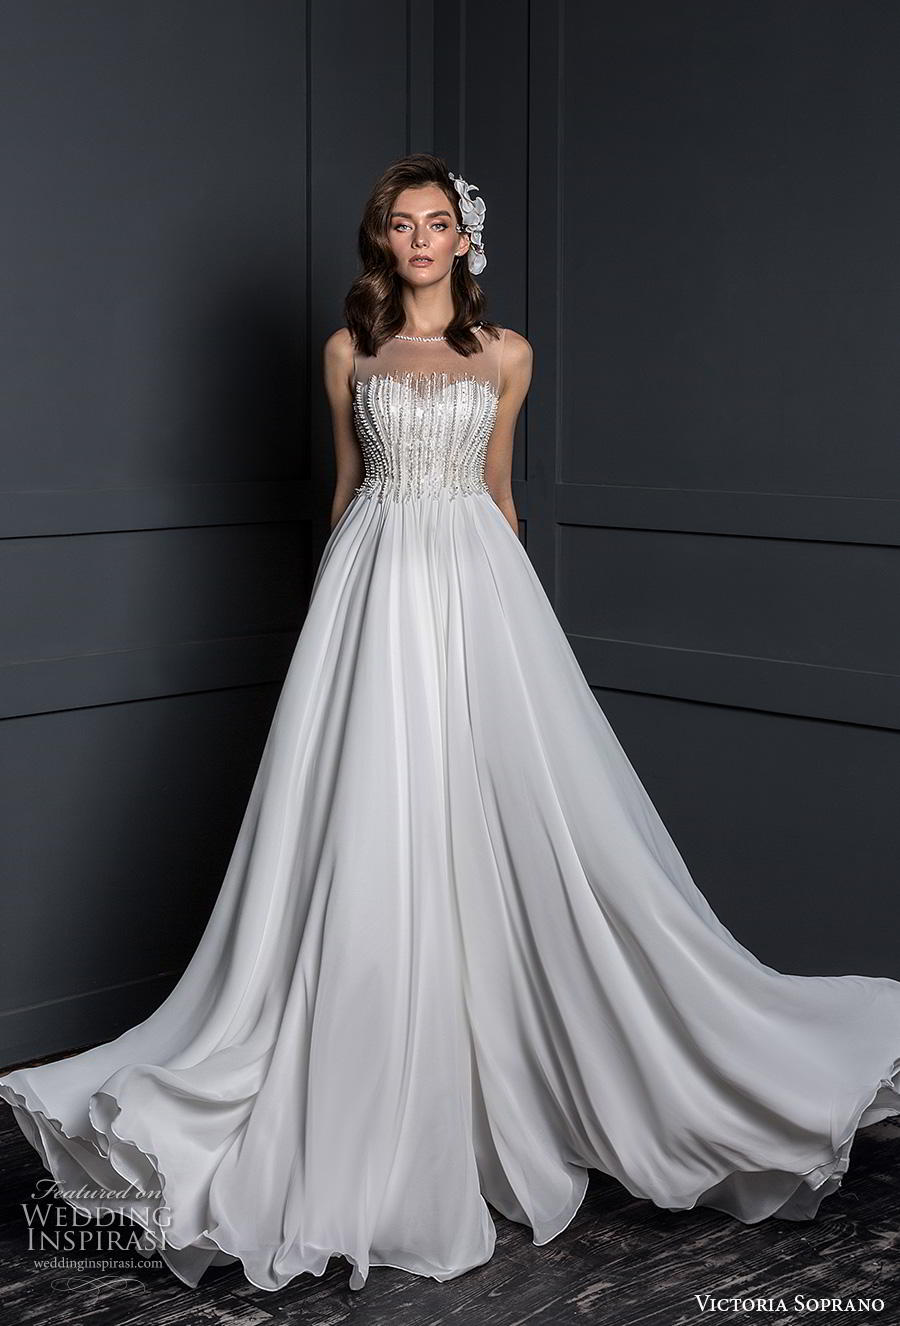 victoria soprano 2020 bridal sleeveless illusion bateau sweetheart neckline heavily embellished bodice glamorous elegant a line wedding dress sheer button back chapel train (10) mv